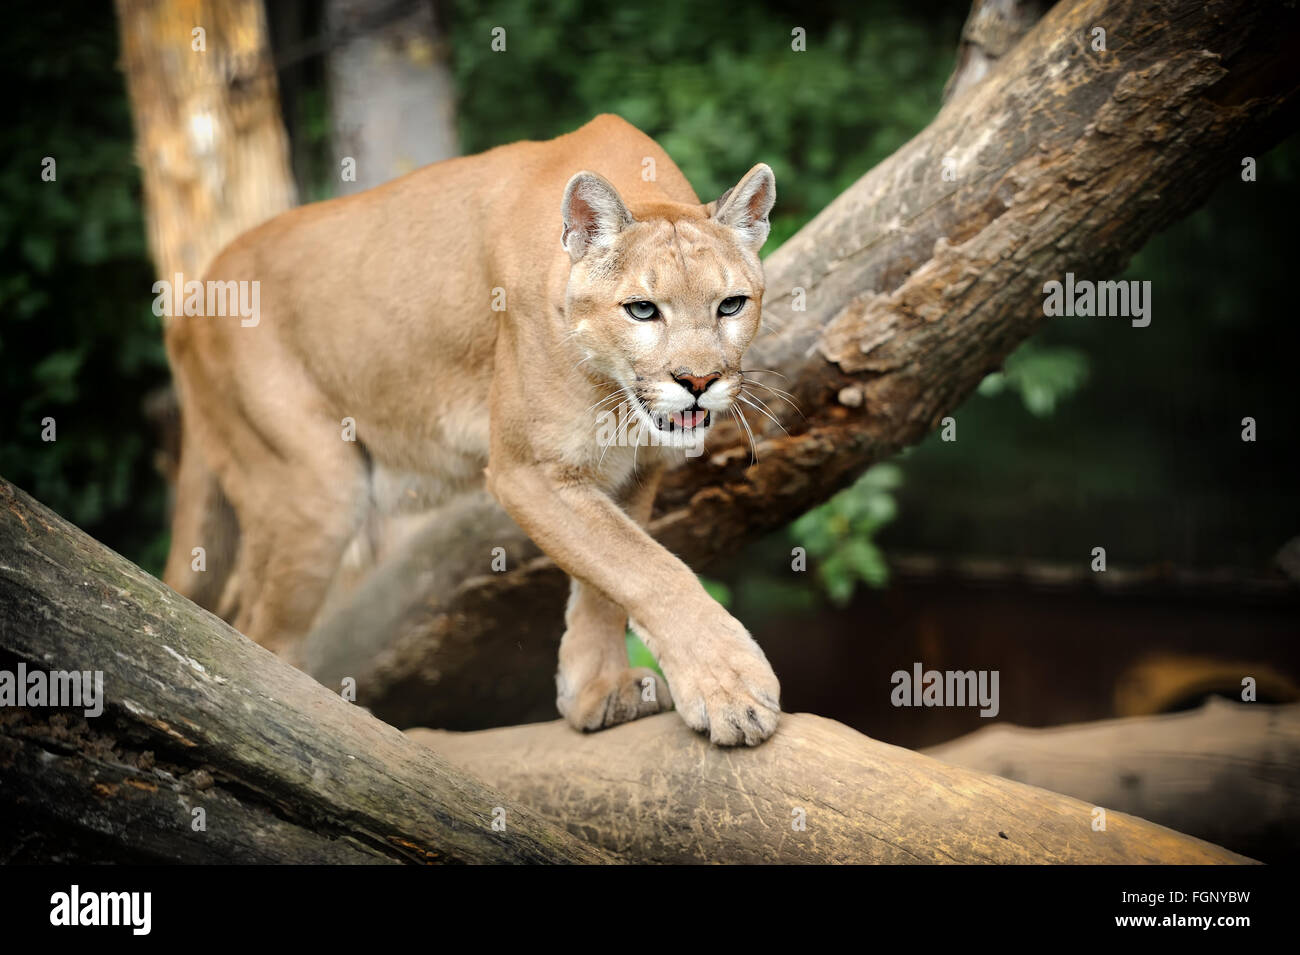 Puma Face in the wild - Stock Image